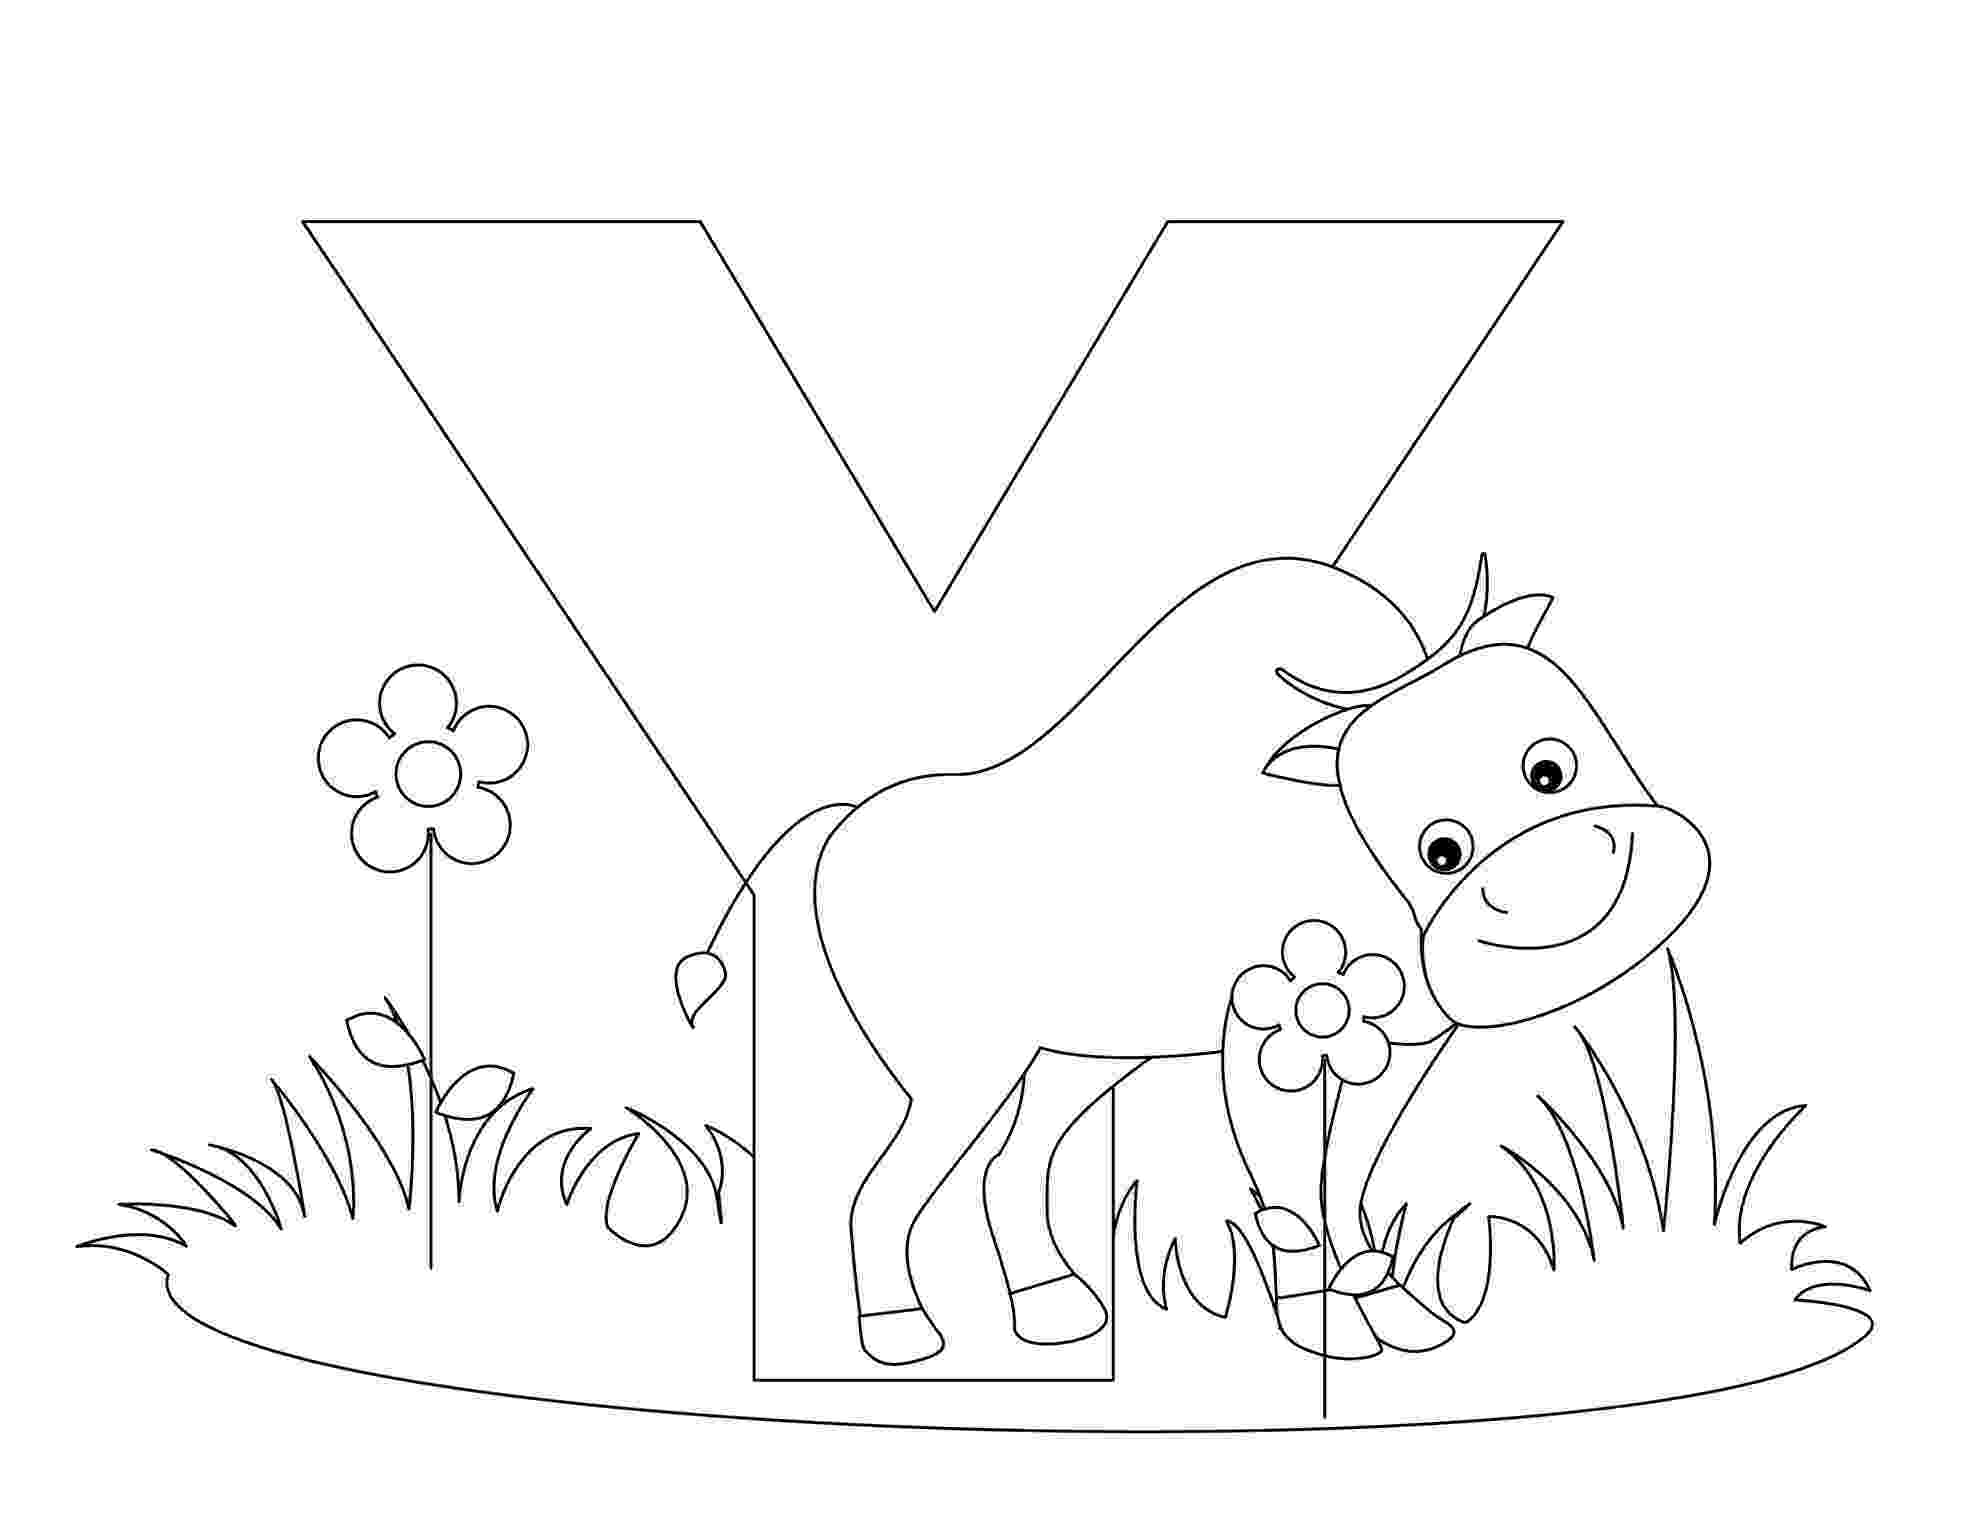 abc coloring book printable free printable alphabet coloring pages for kids best printable abc book coloring